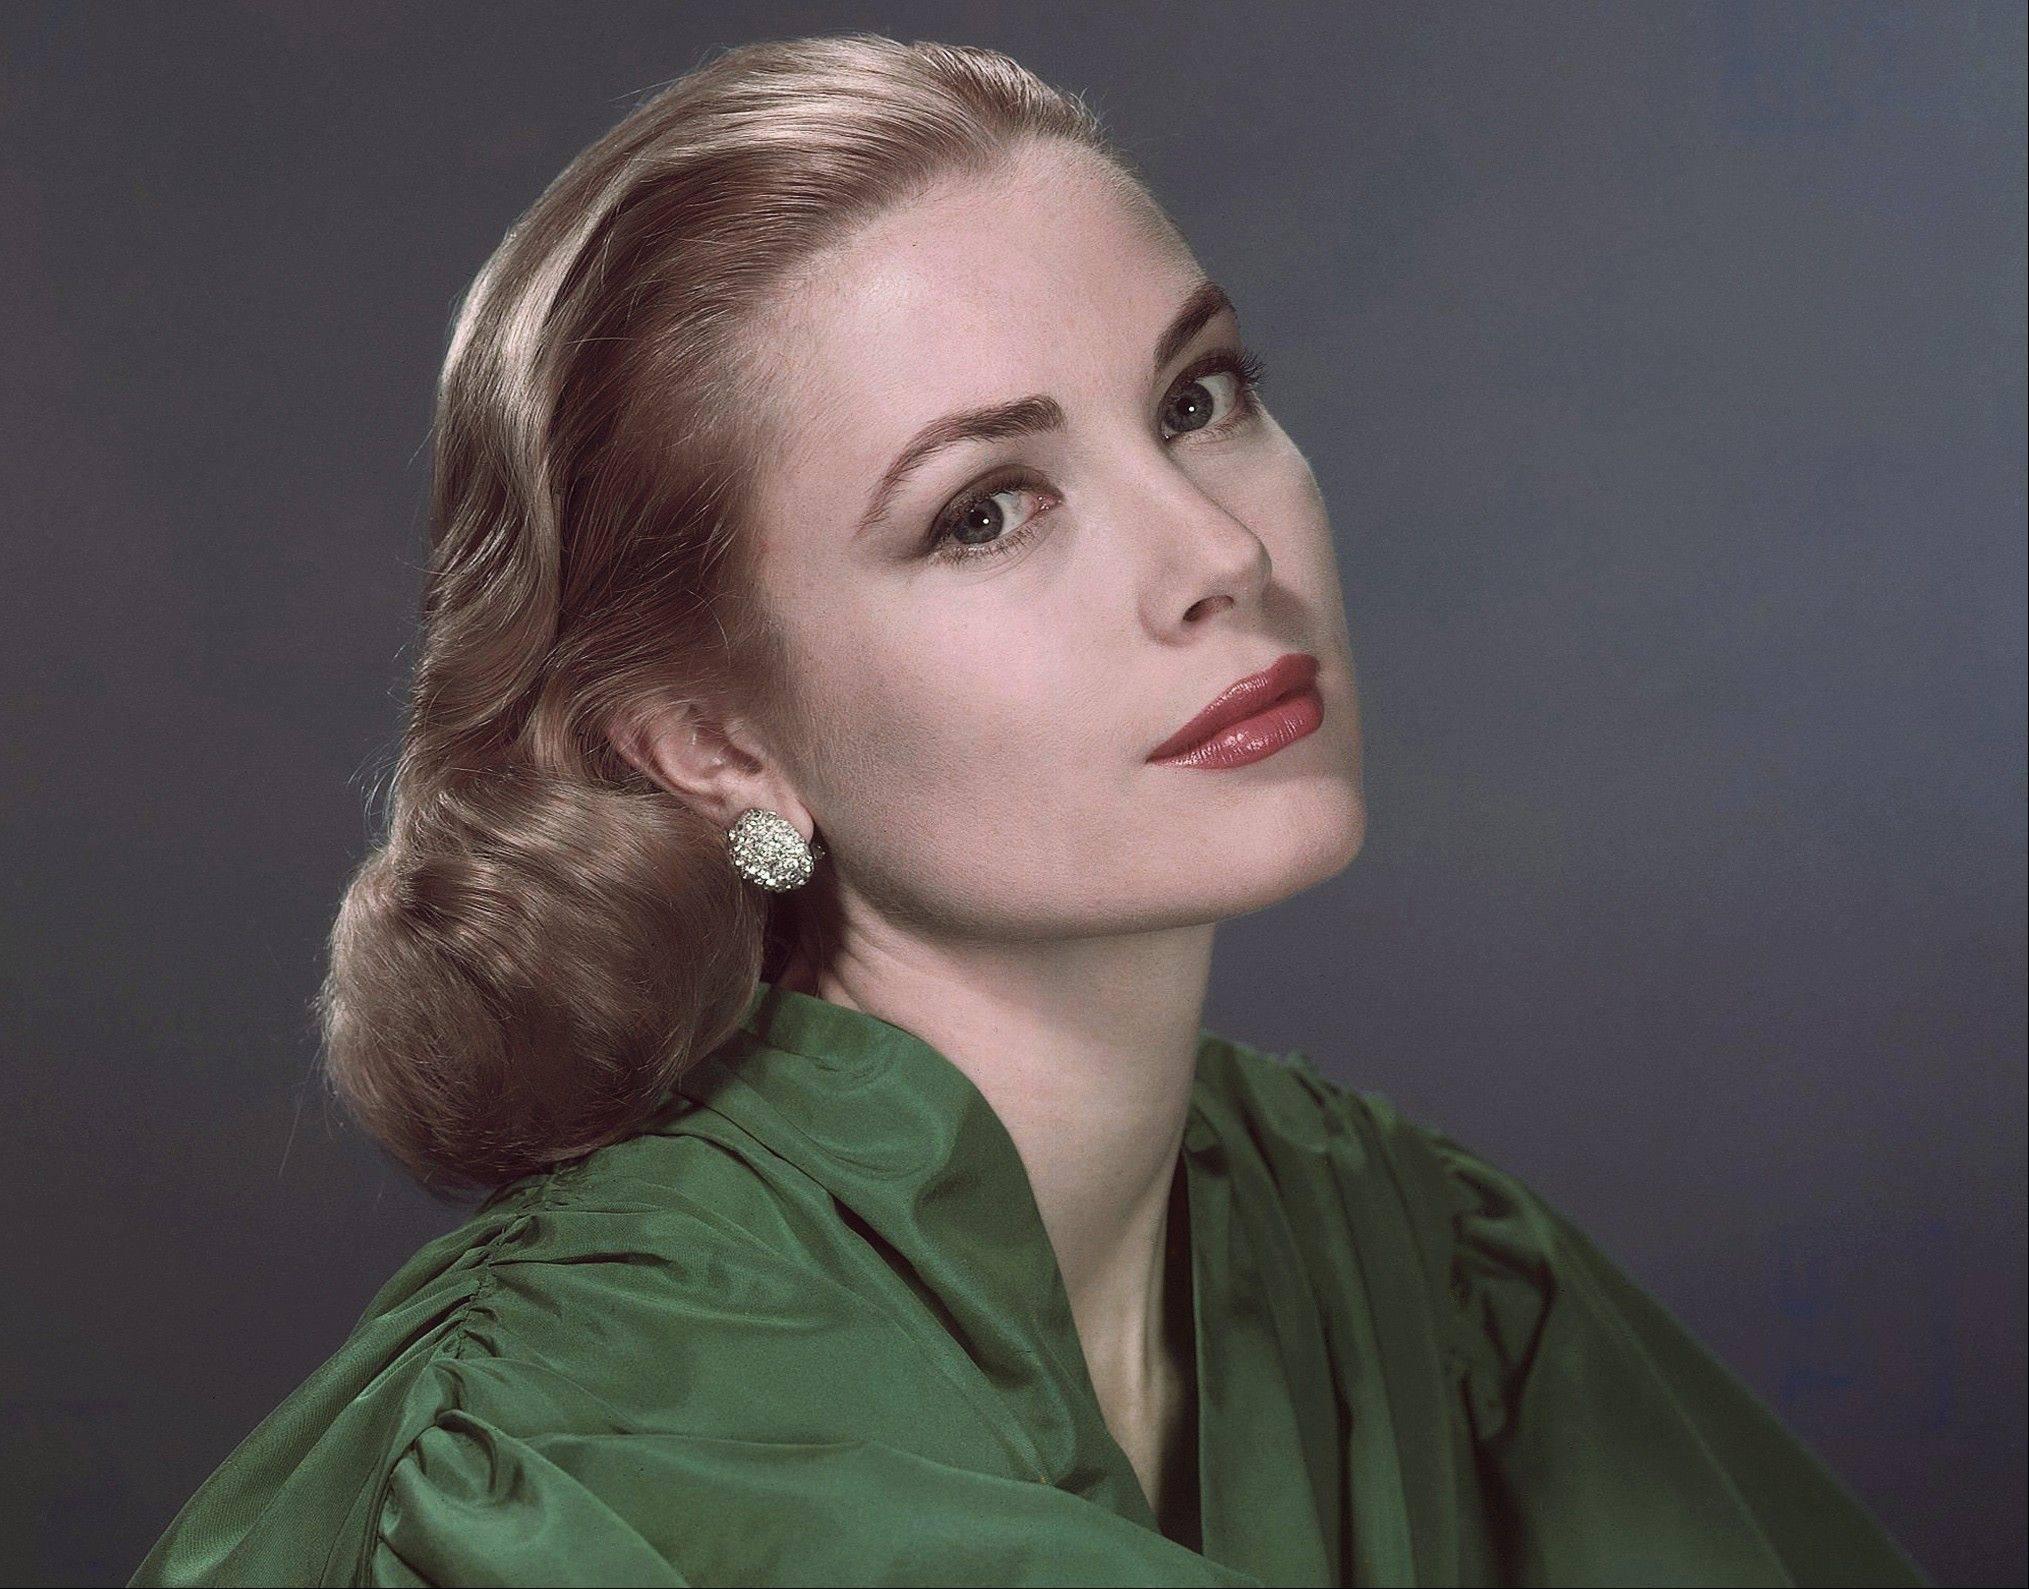 An exhibit on Grace Kelly's upbringing, Hollywood career and storybook ascent to royalty opens Oct. 28 at the Michener Art Museum in suburban Doylestown, Pa., not far from where Kelly made her professional stage debut at the Bucks County Playhouse in 1949.